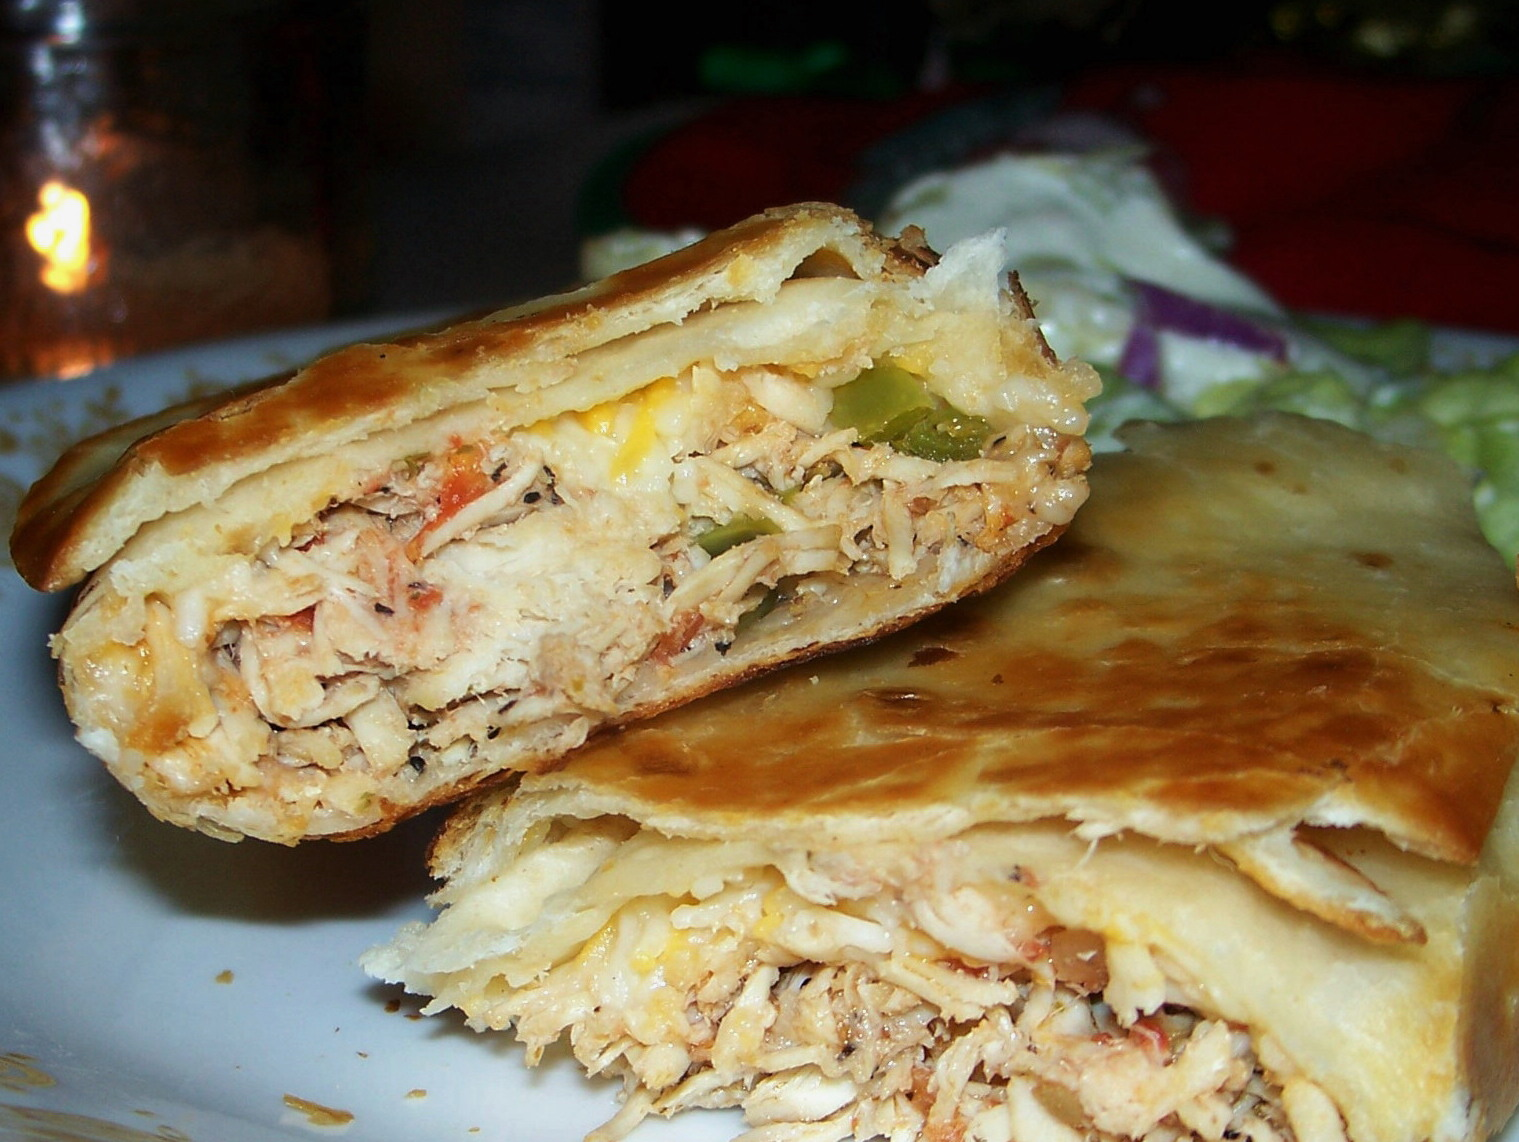 Shredded Chicken for Enchiladas, Tostadas, Tacos…